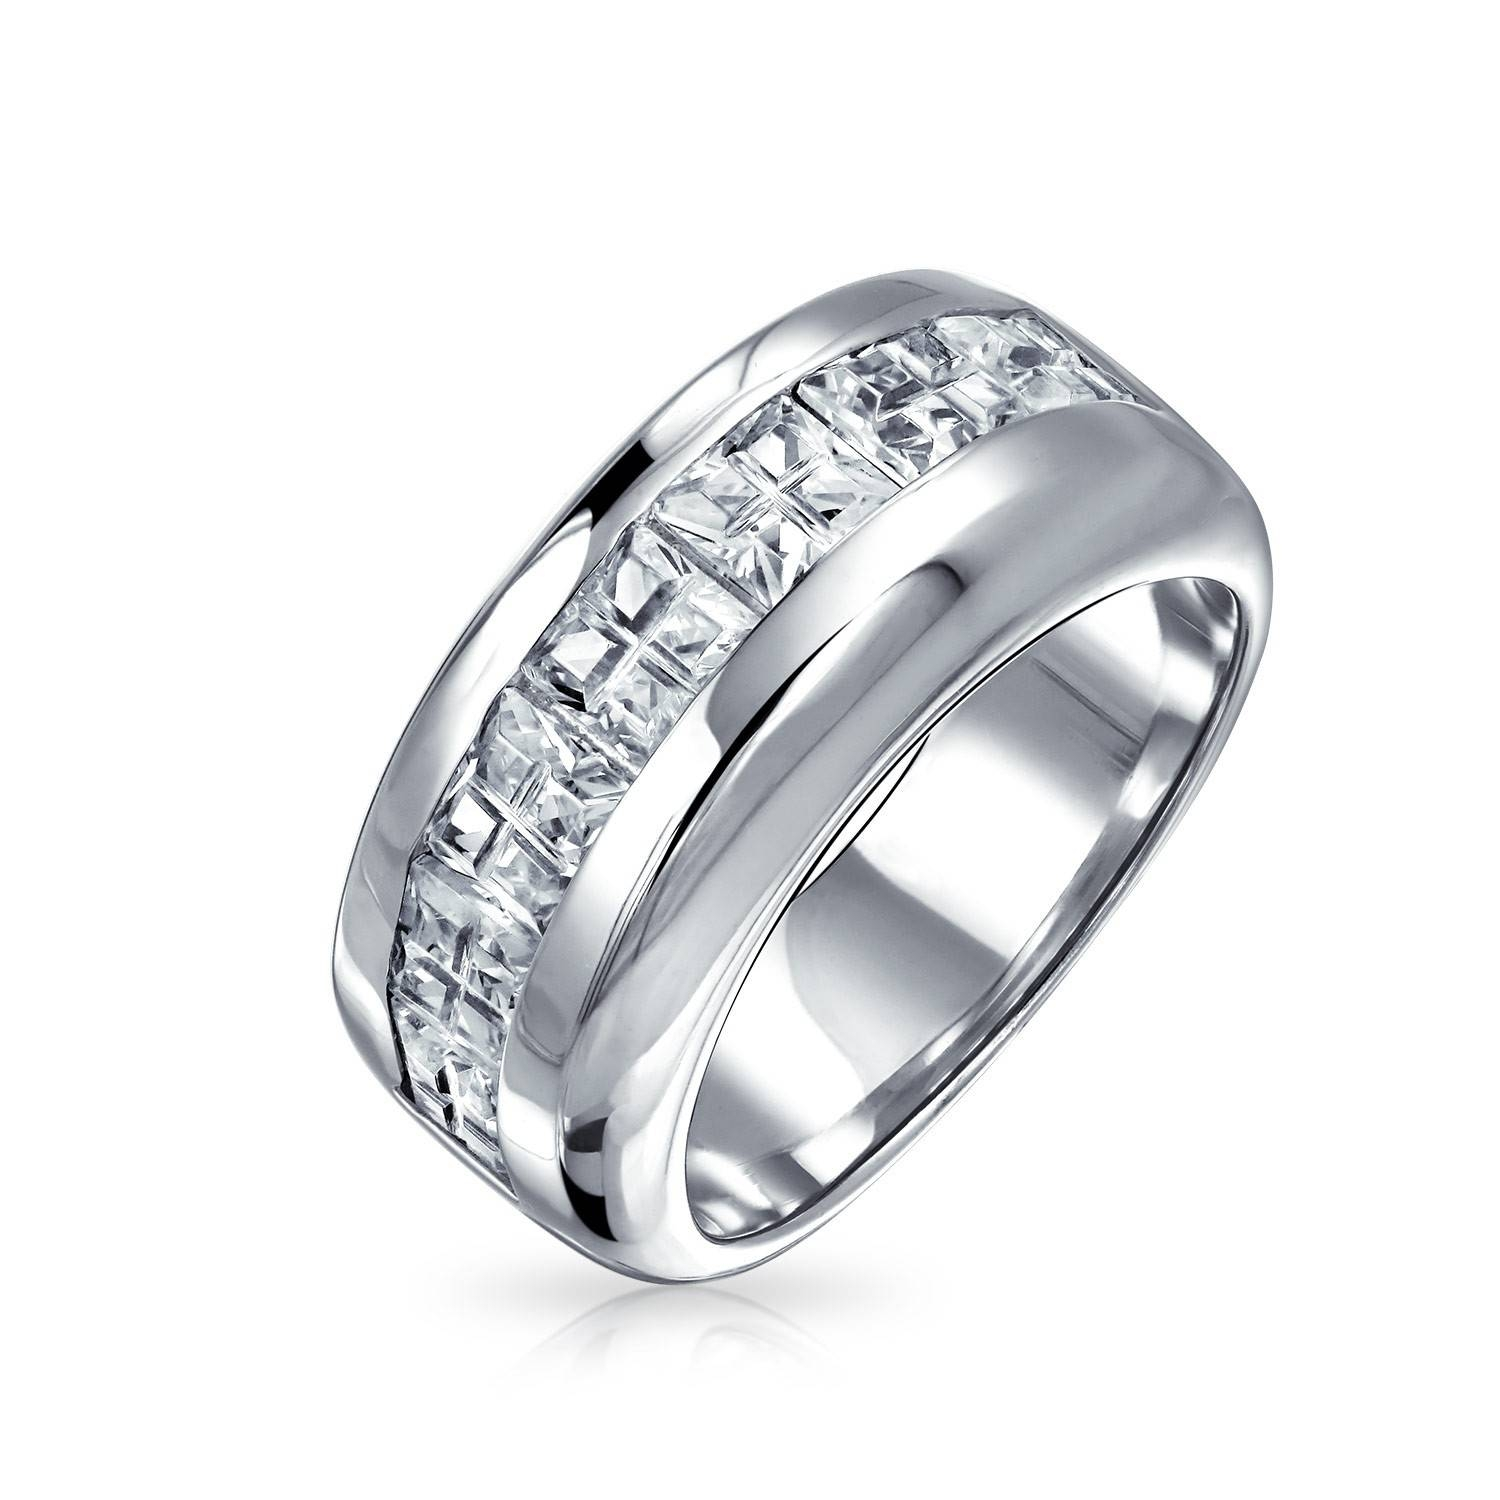 Sterling Silver Wedding Band Invisible Cut Cz Unisex Mens Ring With Regard To Silver Wedding Bands (View 7 of 15)